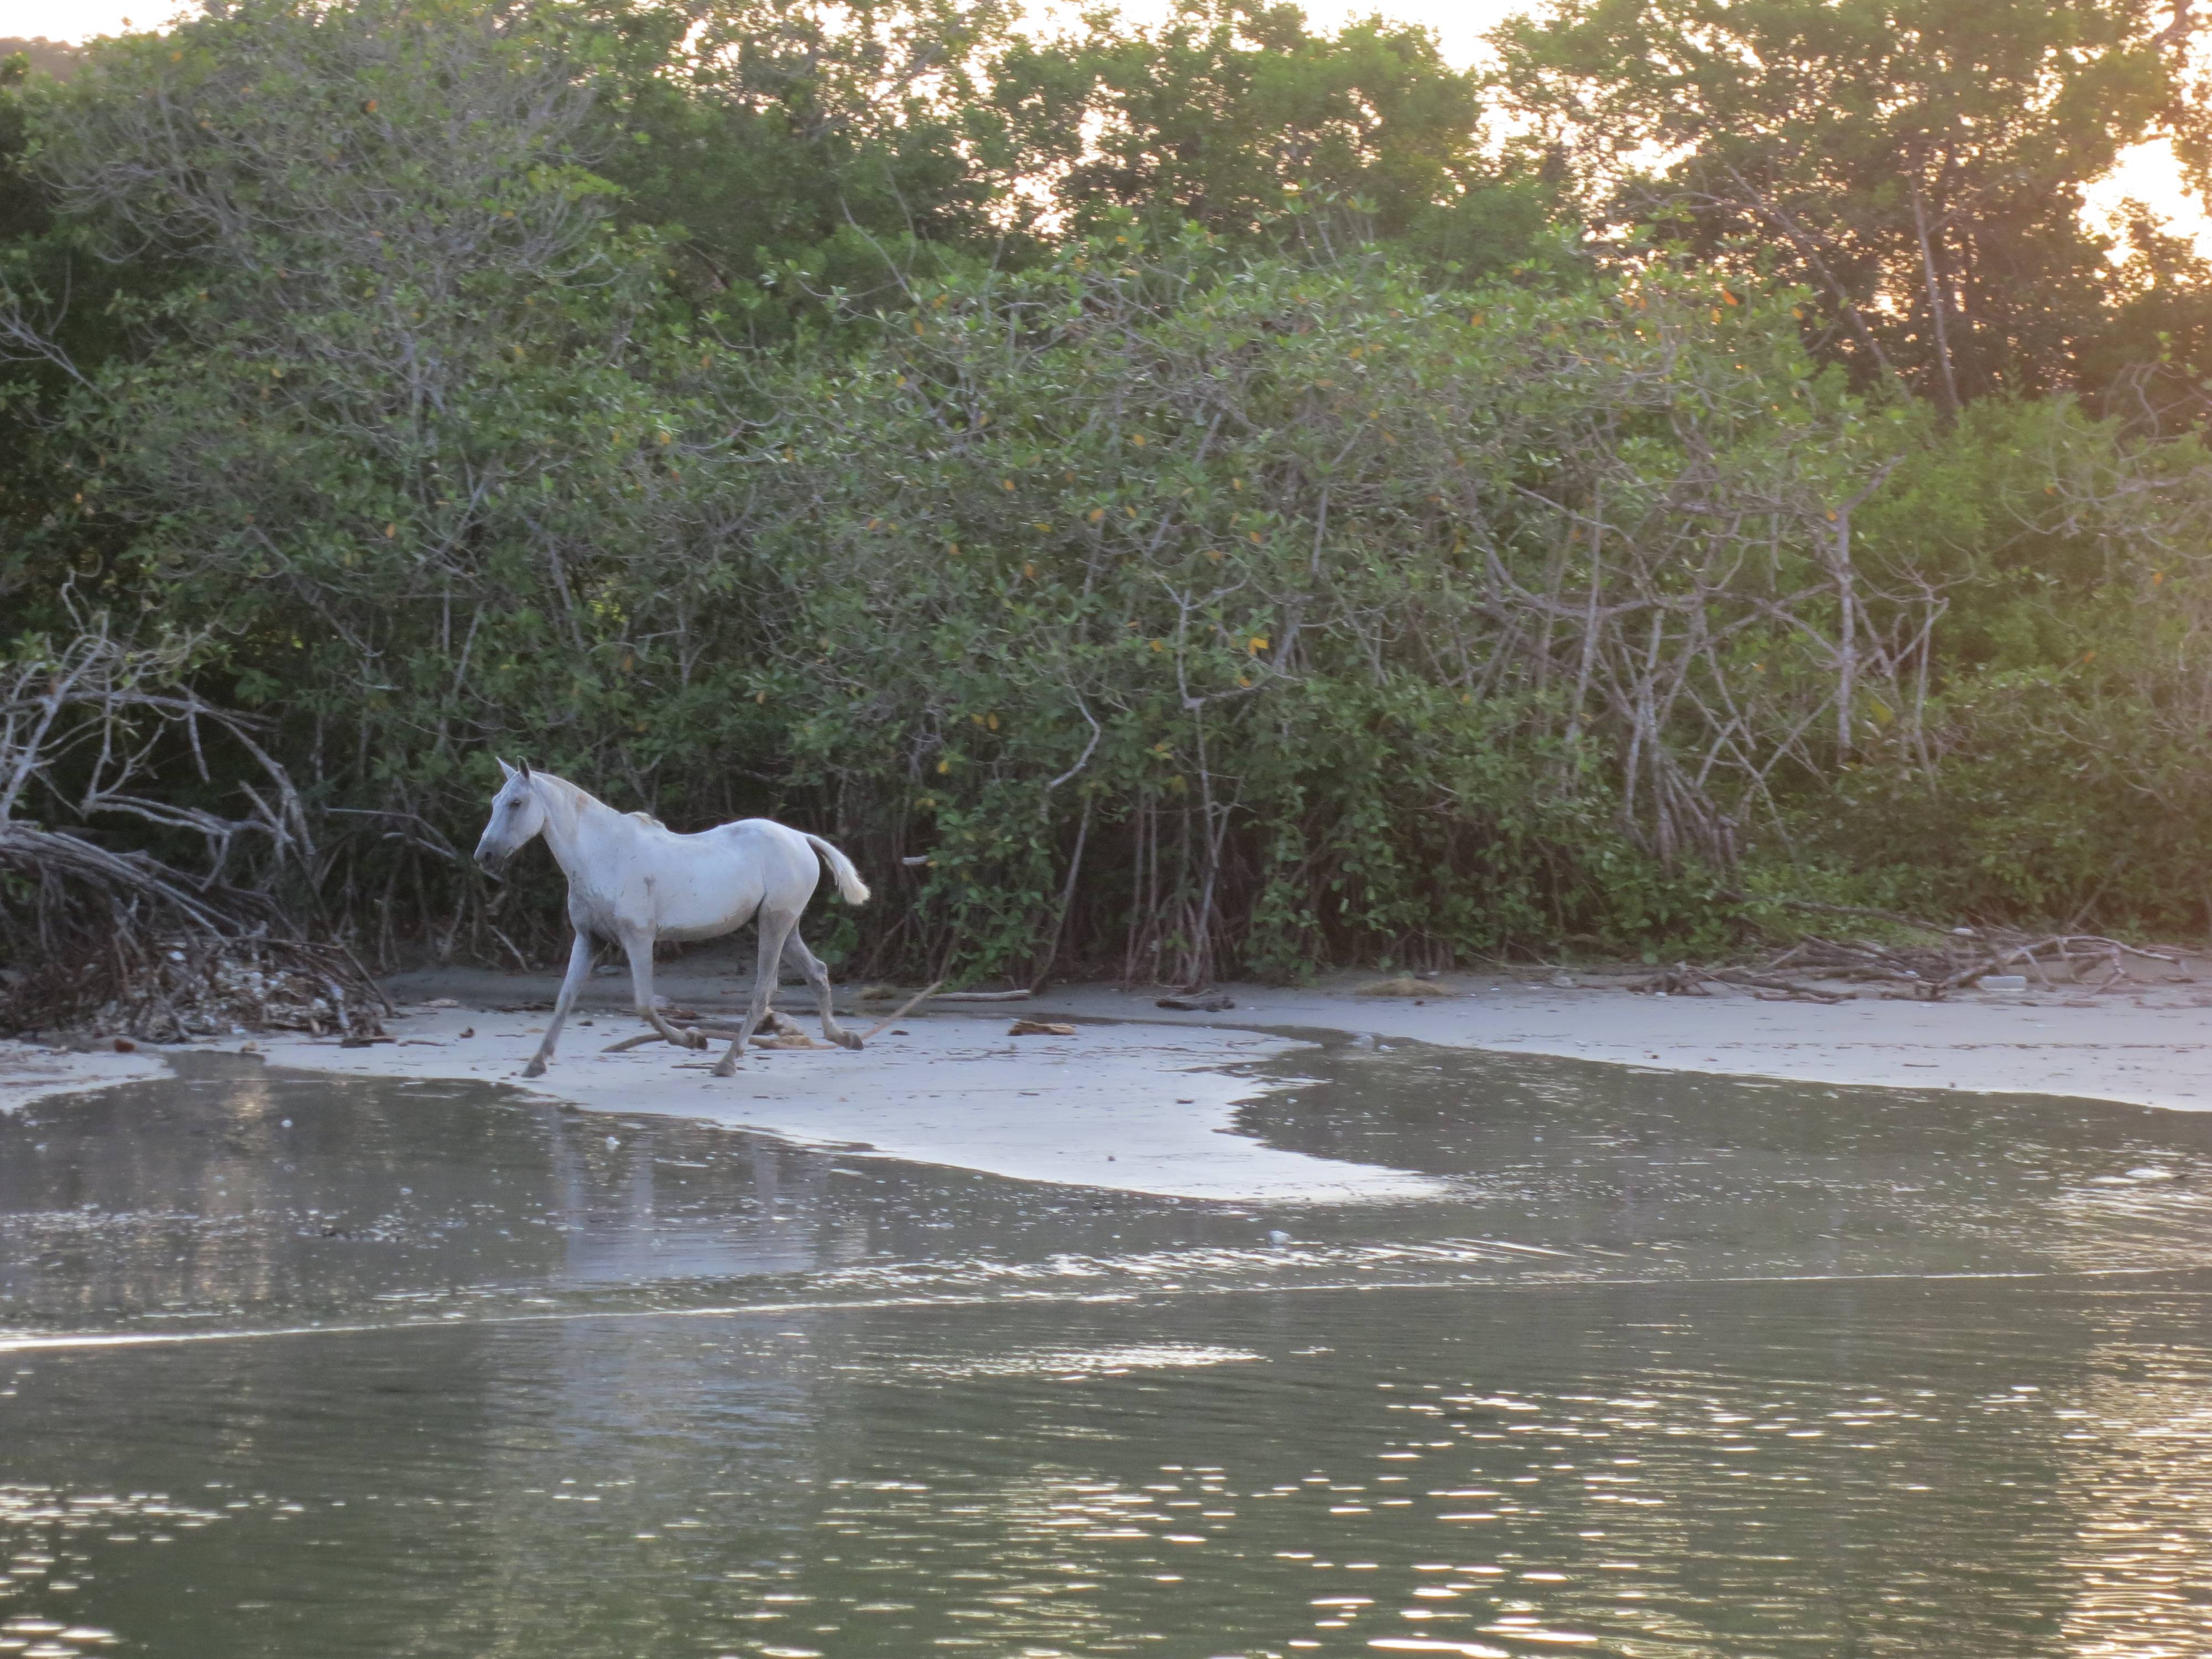 Wild Horse on the Beach